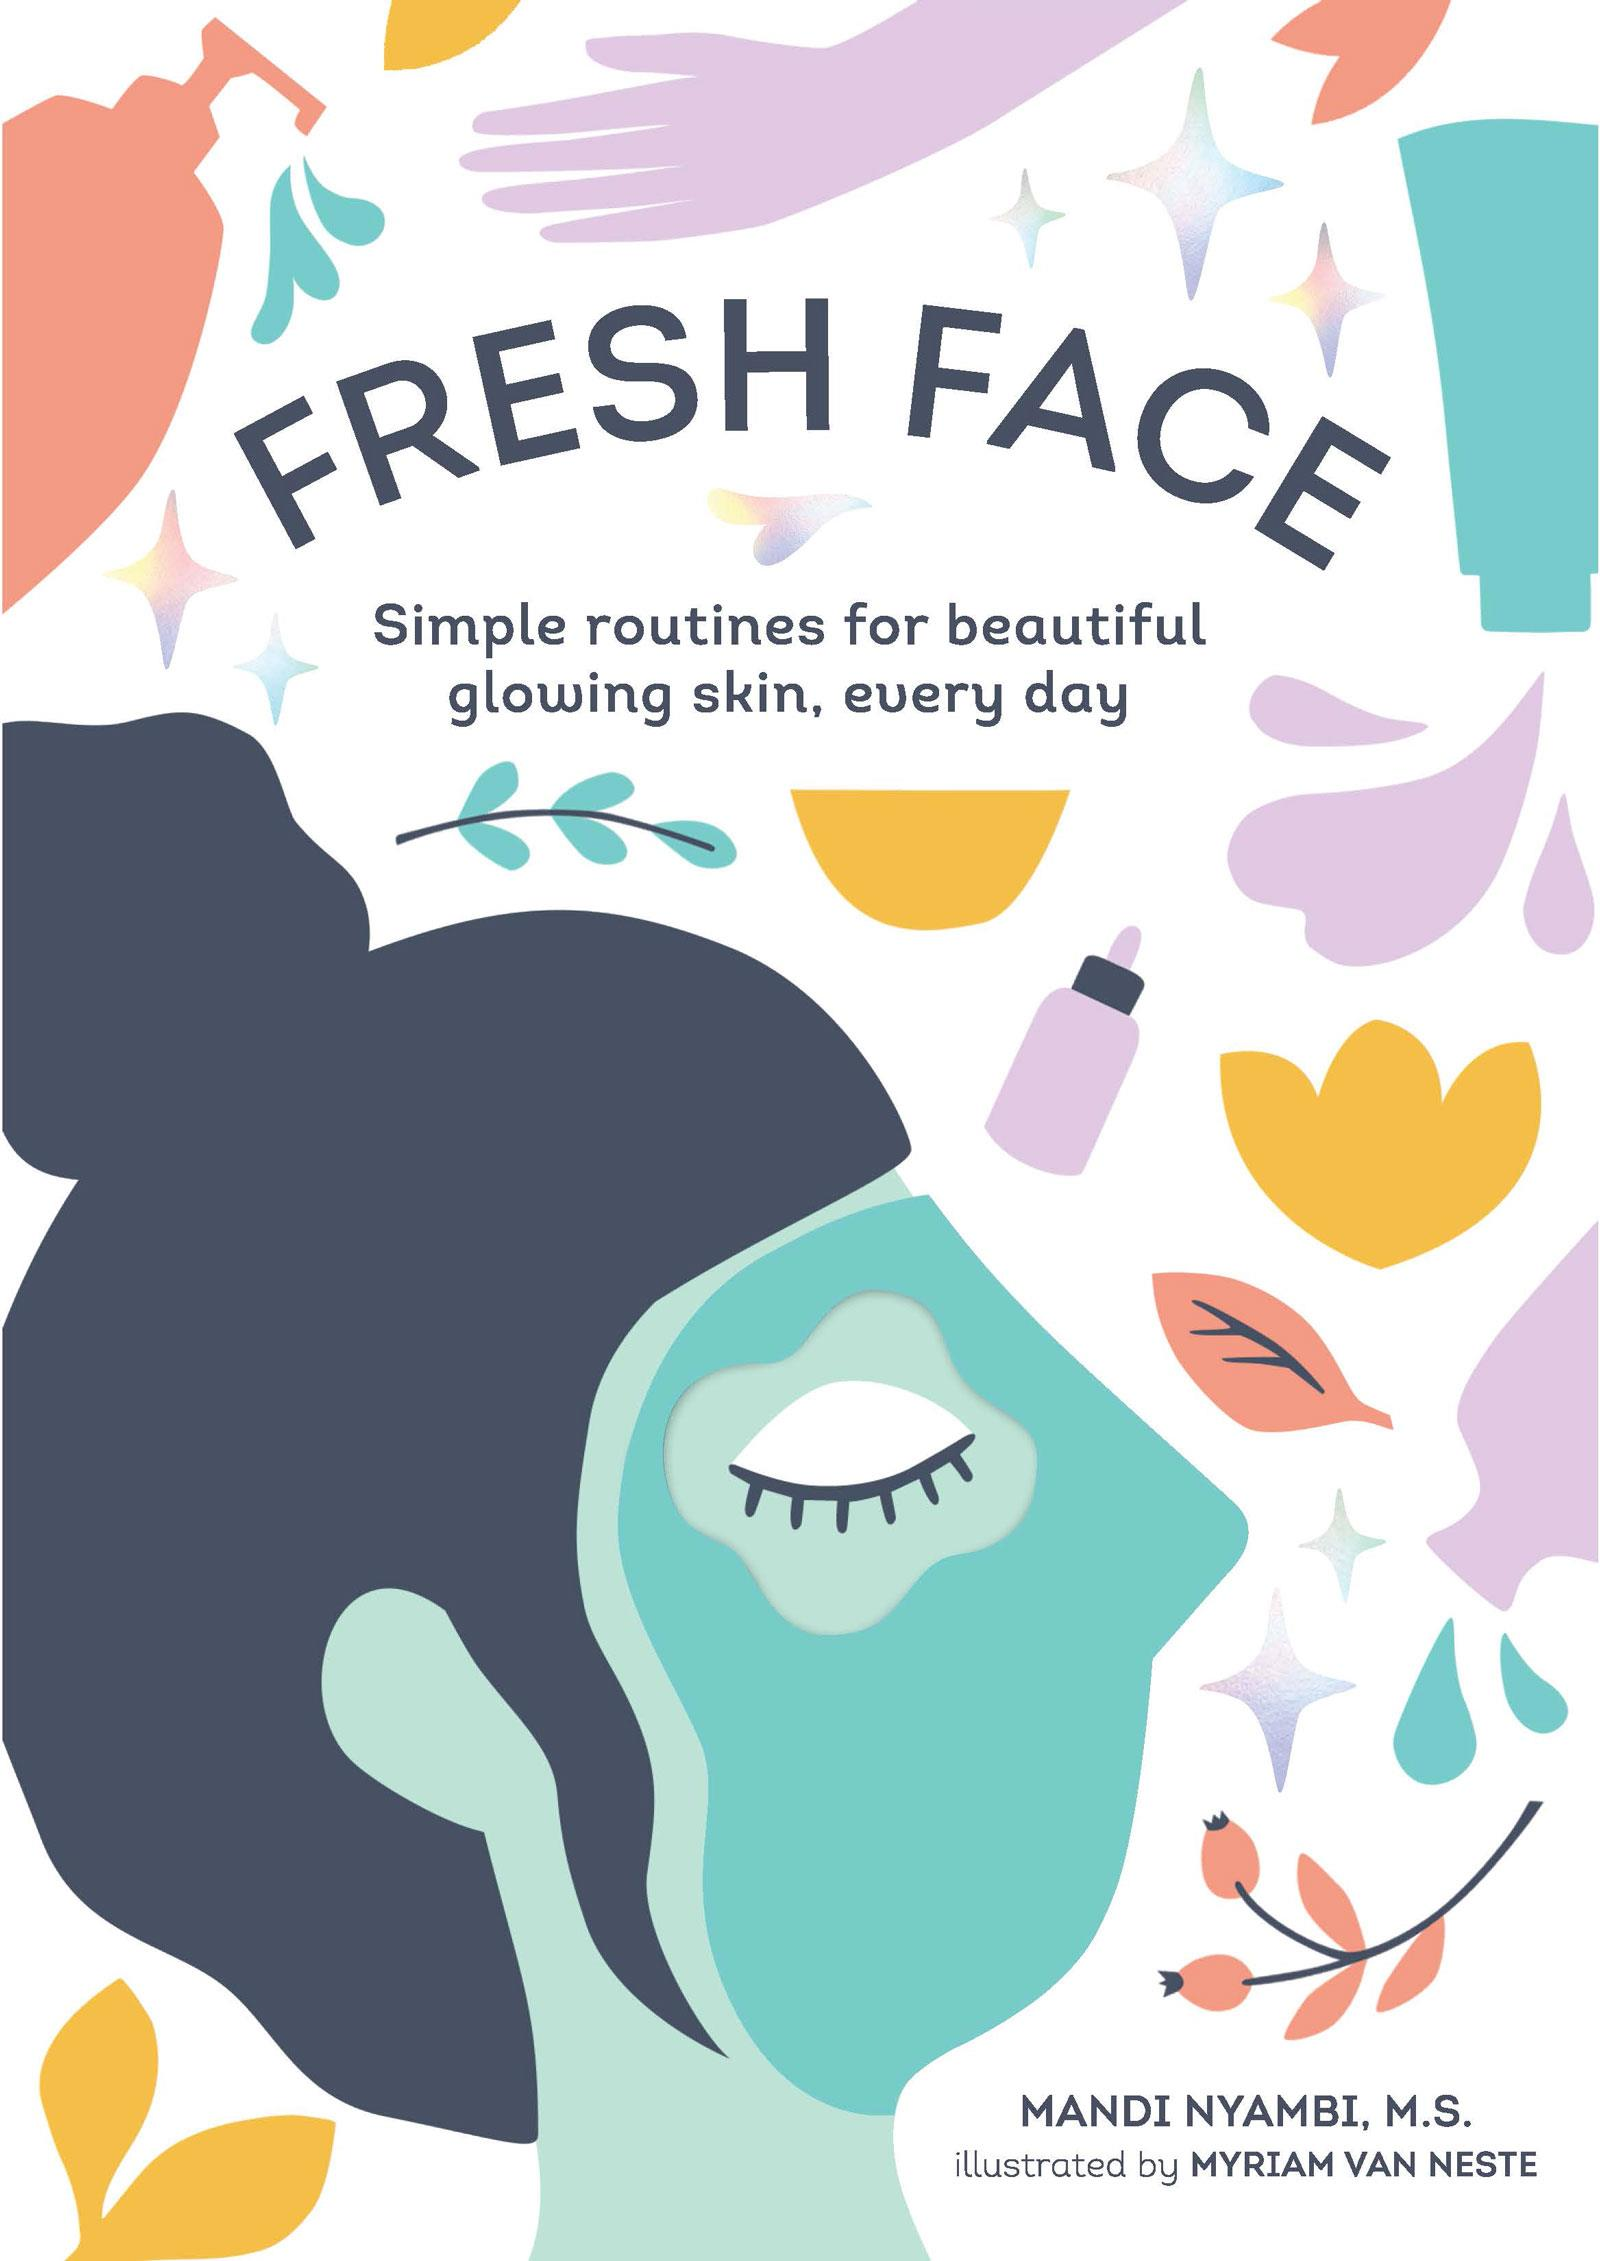 Fresh Face Simple routines for beautiful glowing skin, every day